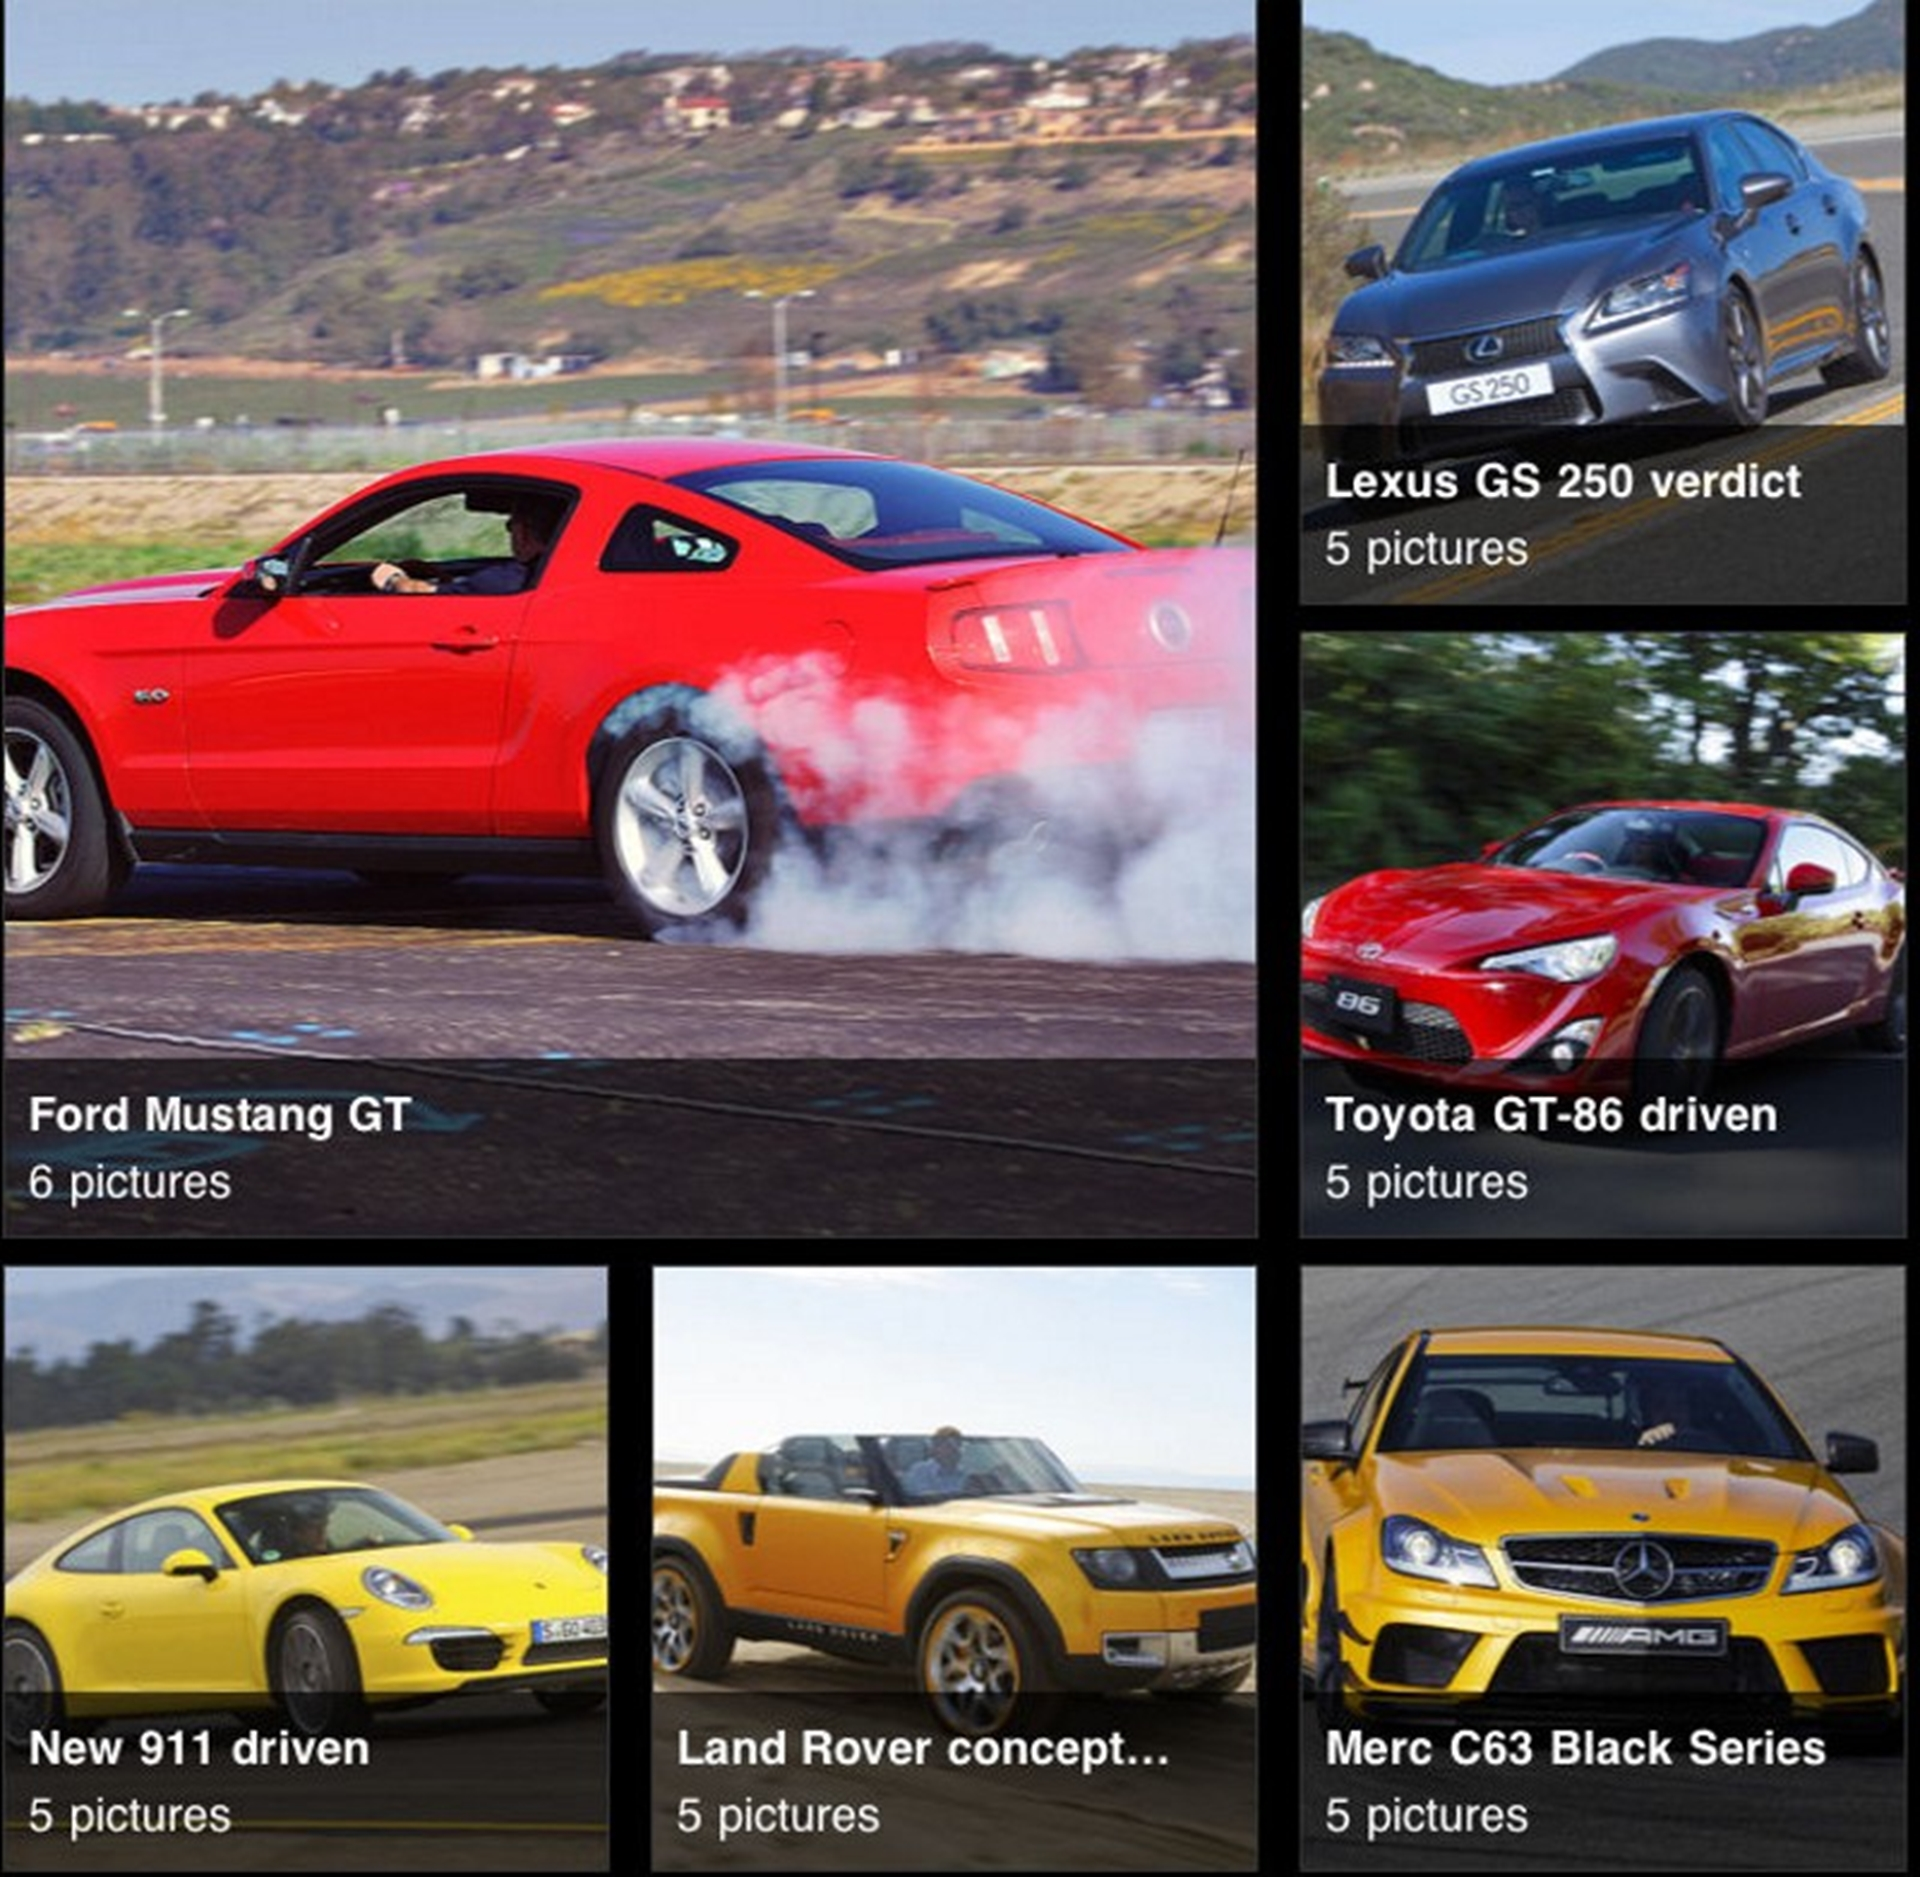 Autocar goes social with free iPad app